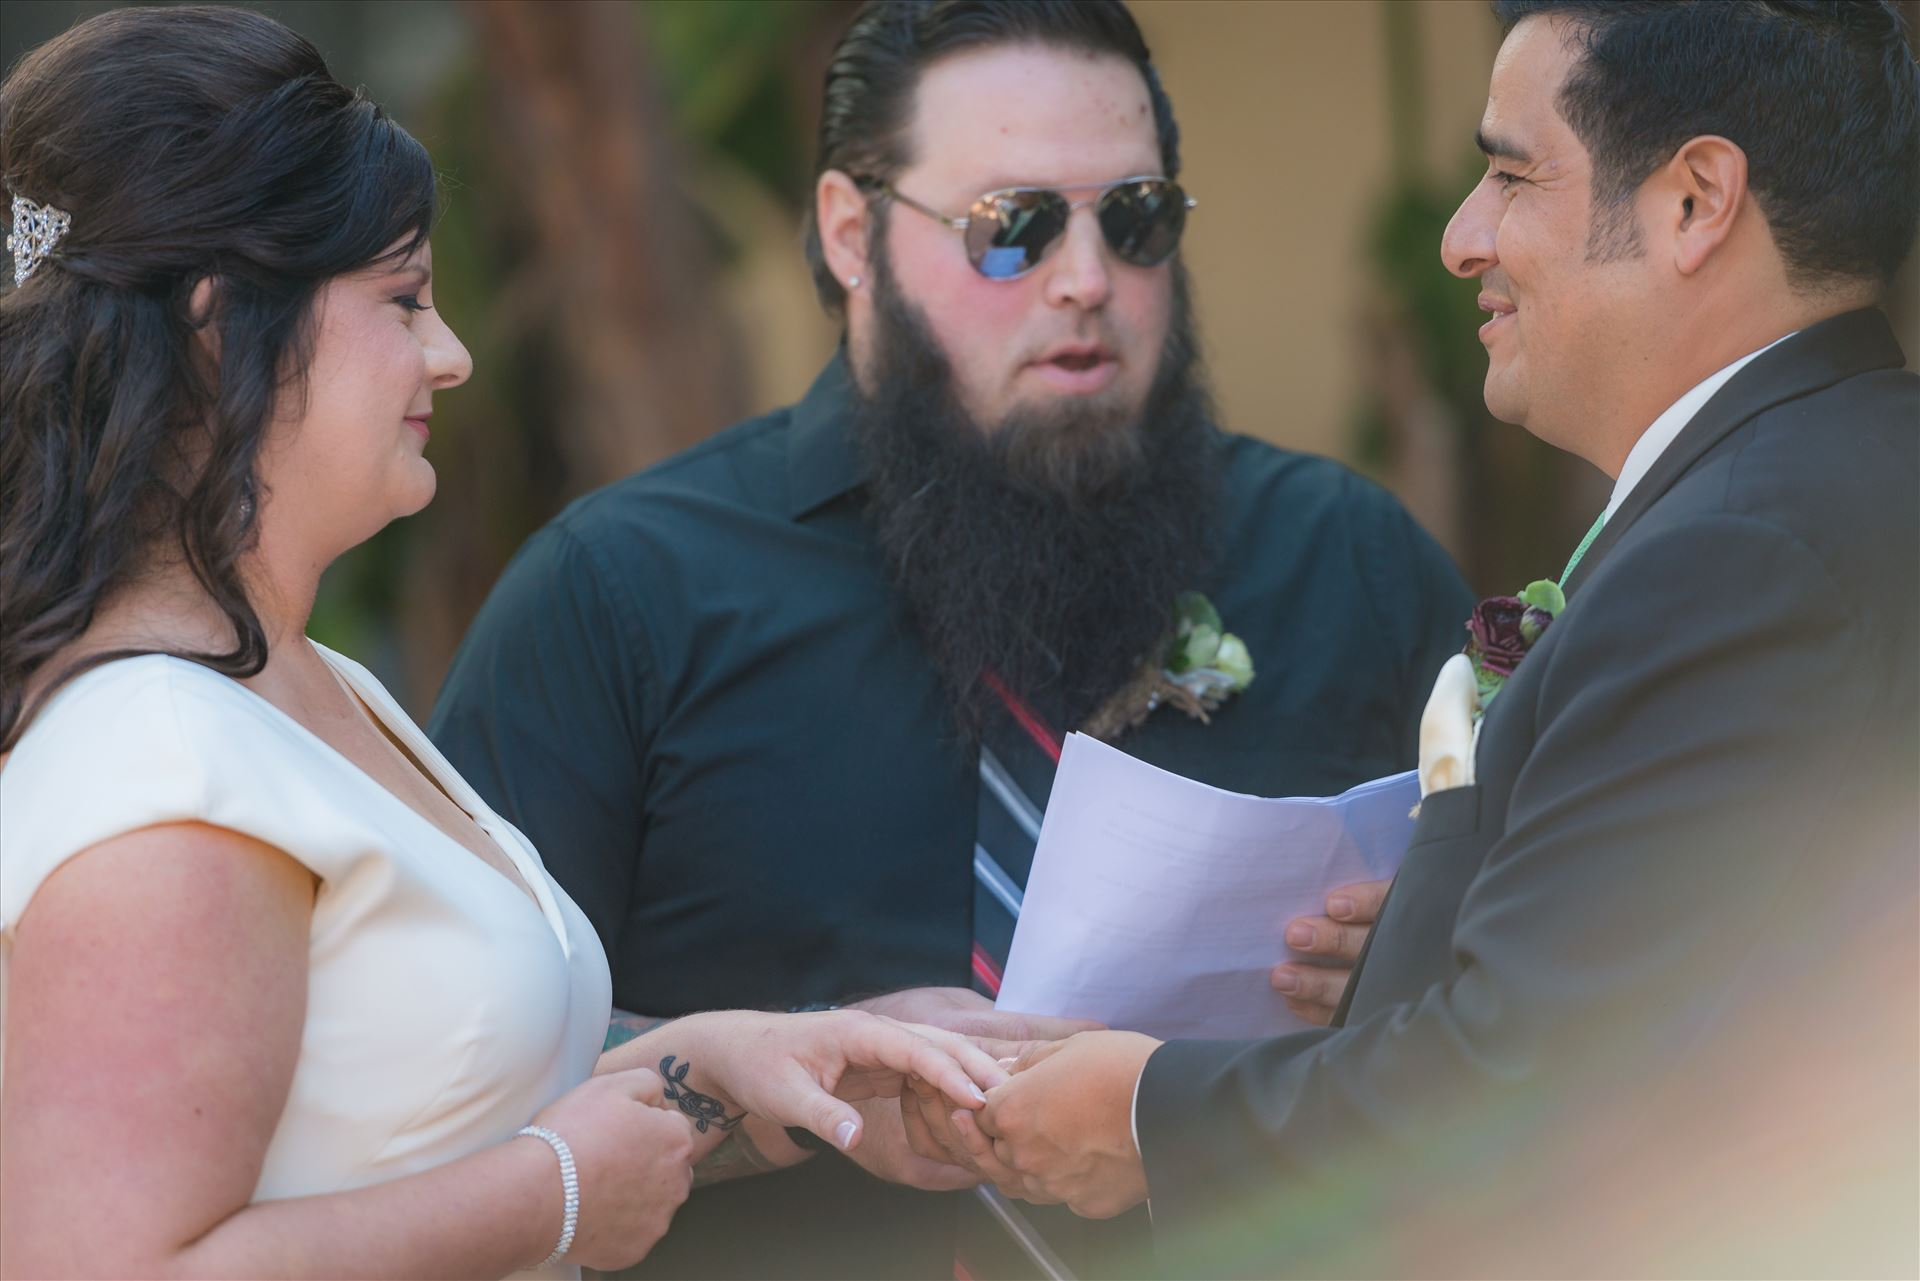 Mary and Alejandro 28 - Wedding photography at the Historic Santa Maria Inn in Santa Maria, California by Mirror's Edge Photography. Saying their vows. by Sarah Williams